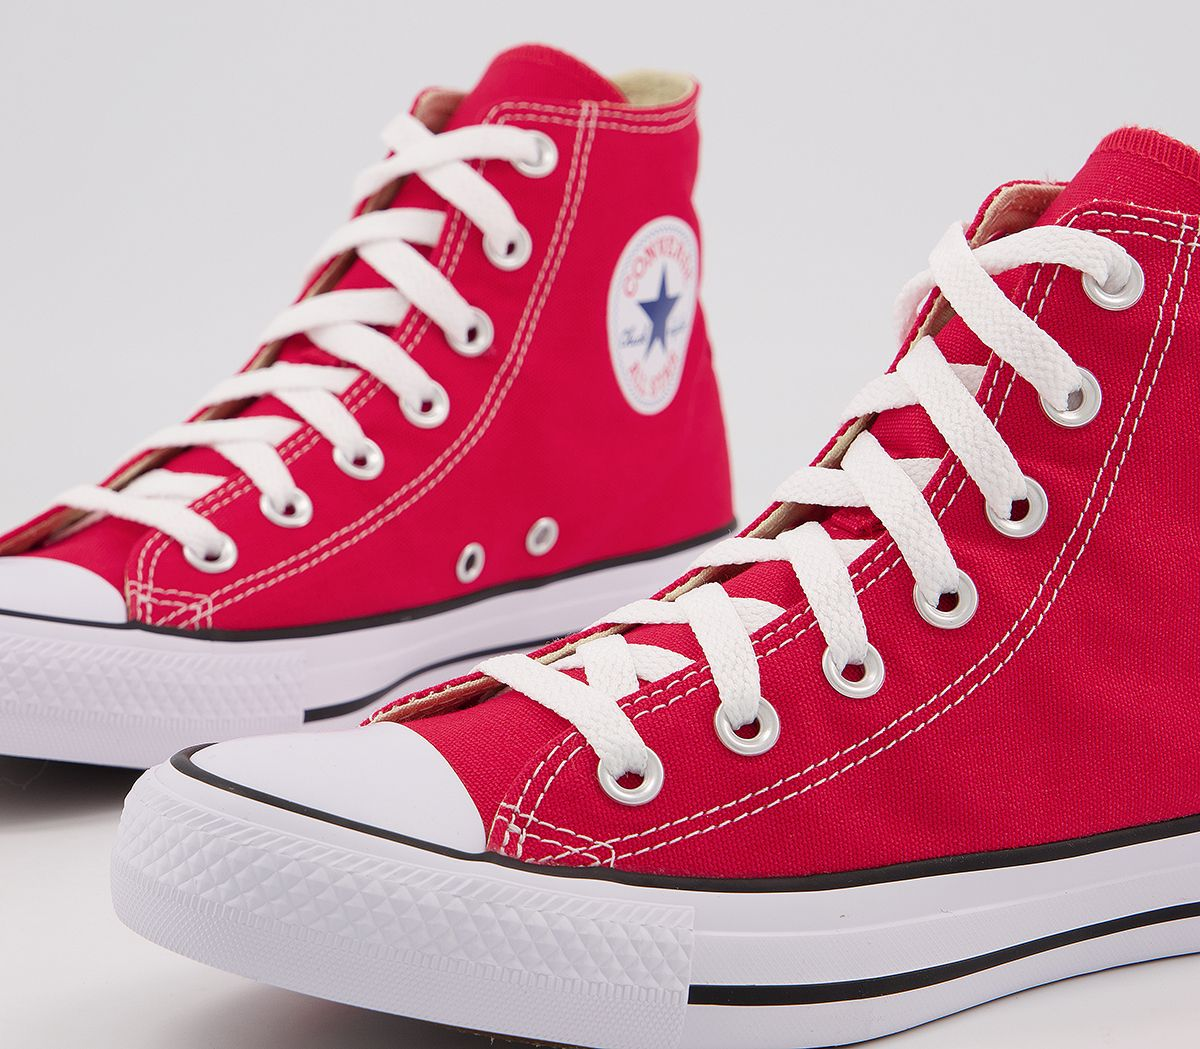 4f314a887b28 Converse All Star Hi Red Canvas - Unisex Sports